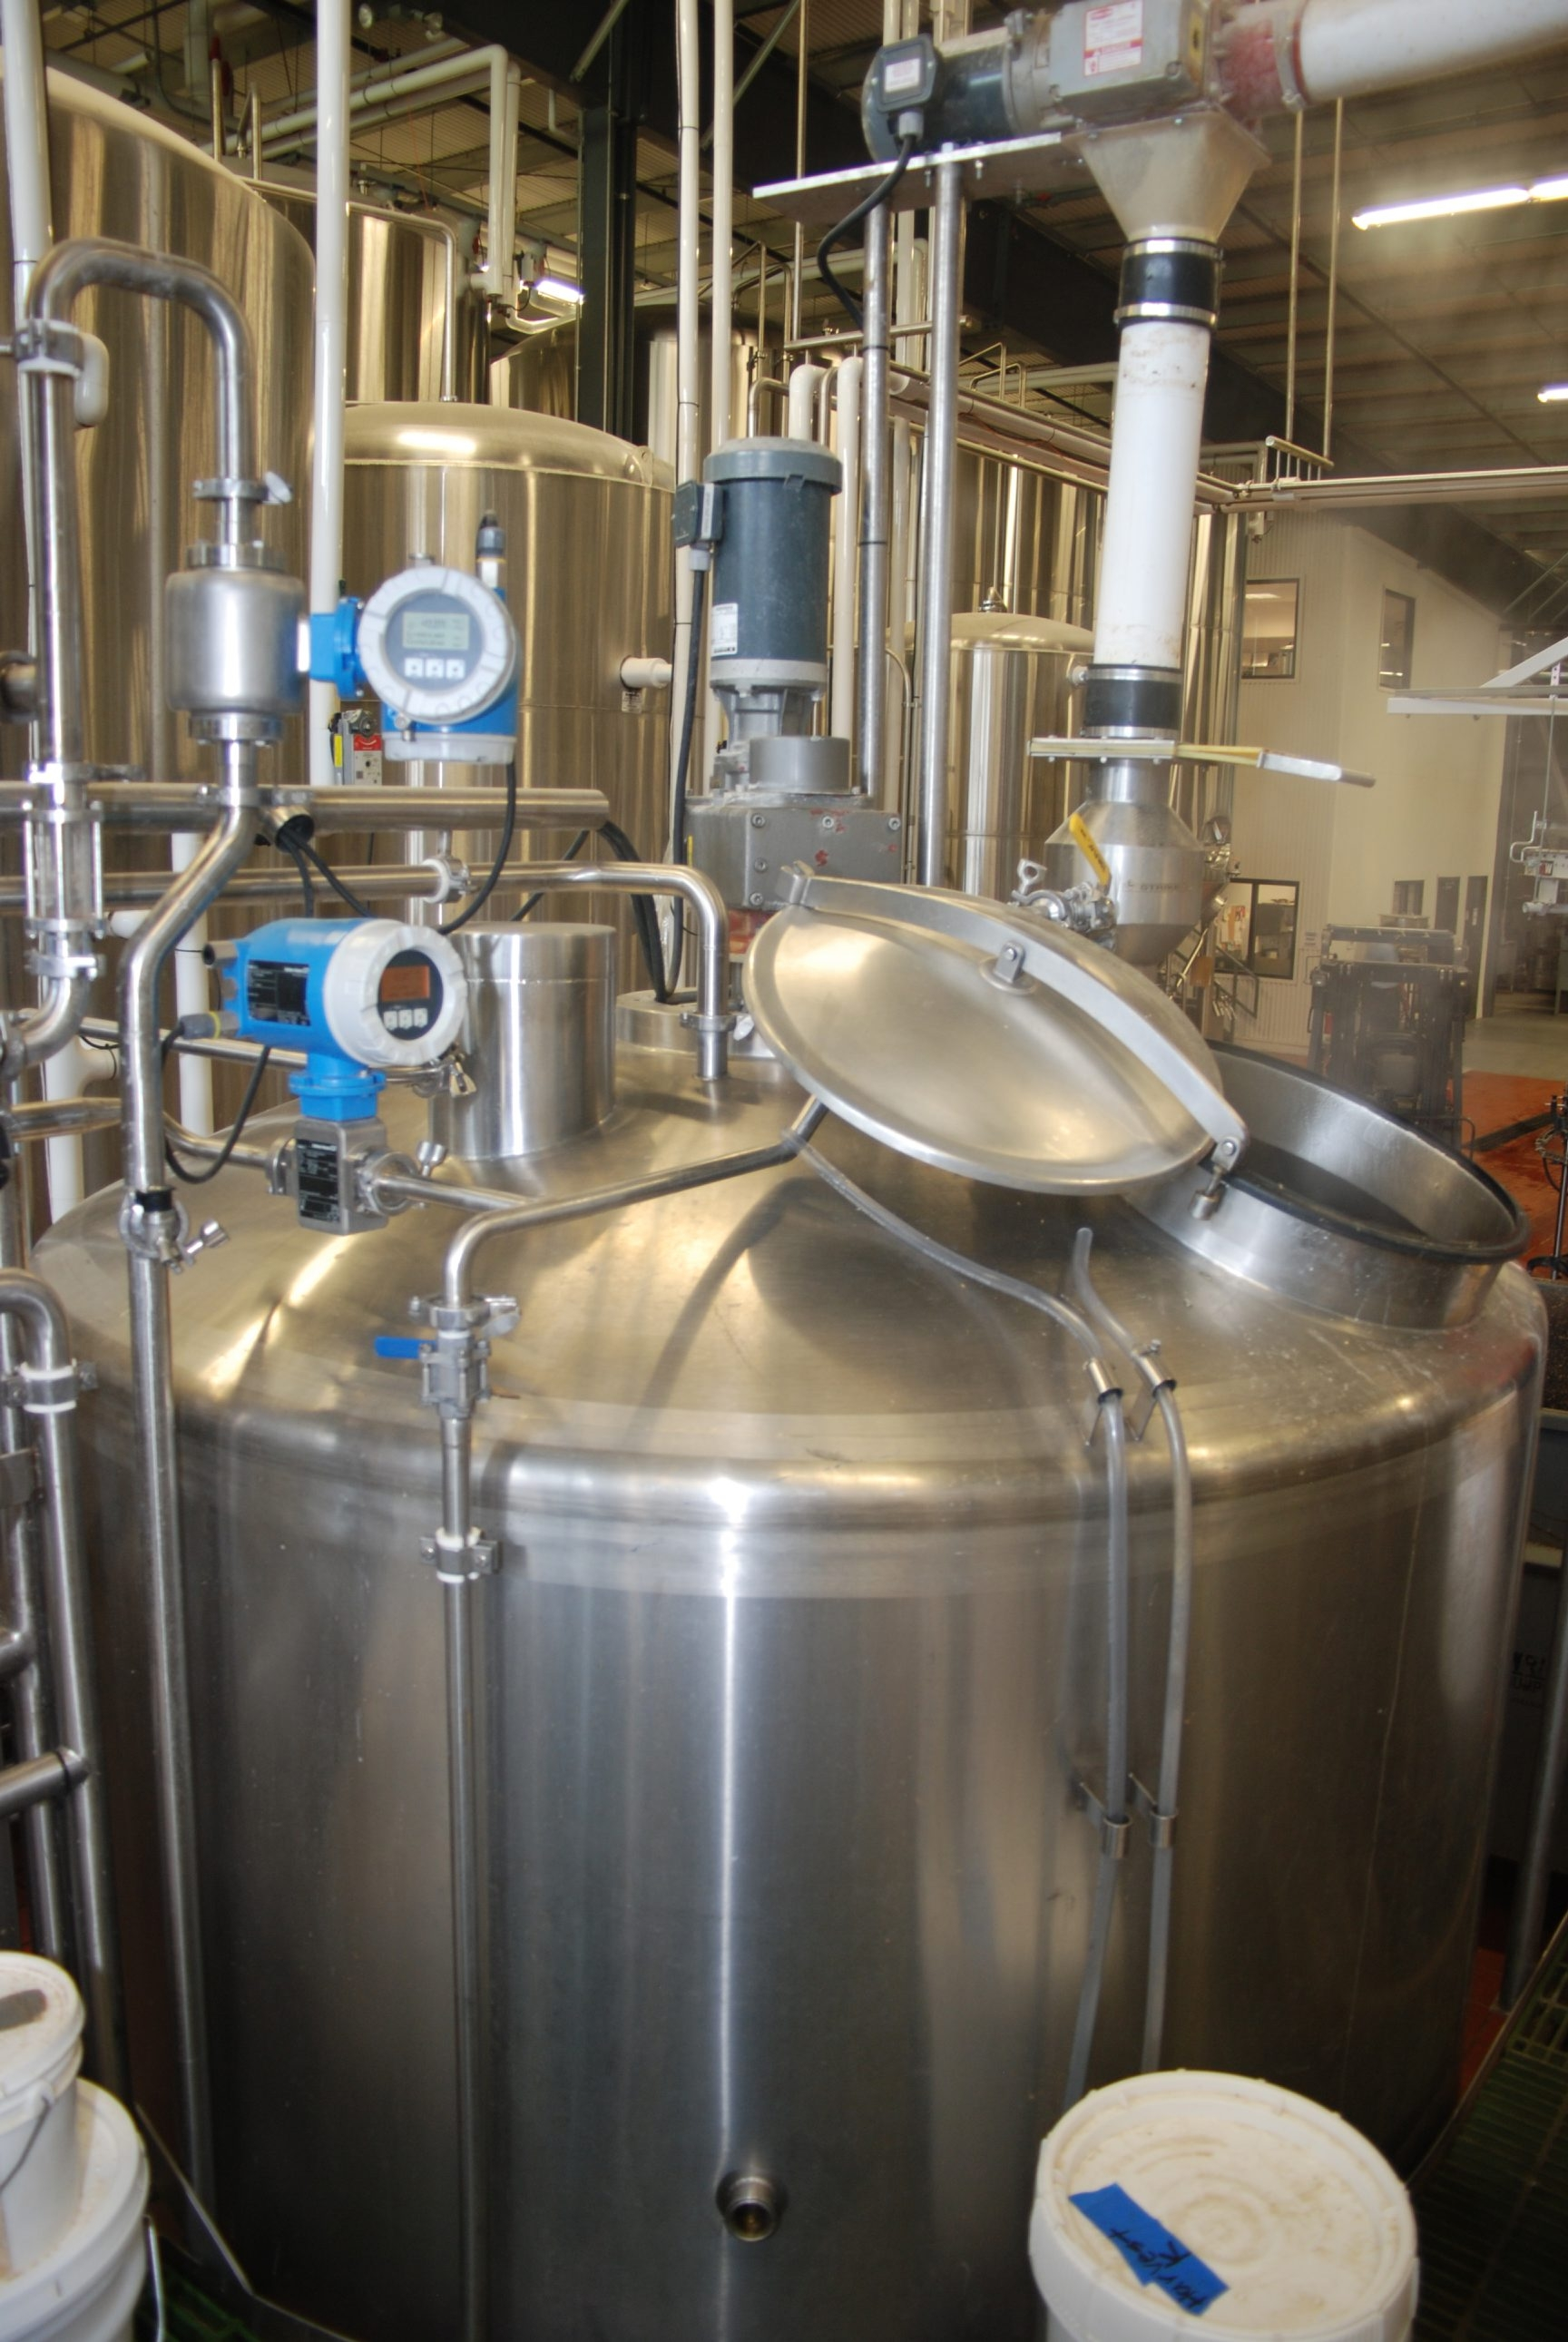 One of two mash tun brewing vessels at Southern Tier Brewing Company in Lakewood. Brewers operate this equipment 24 hours a day, 7 days a week.